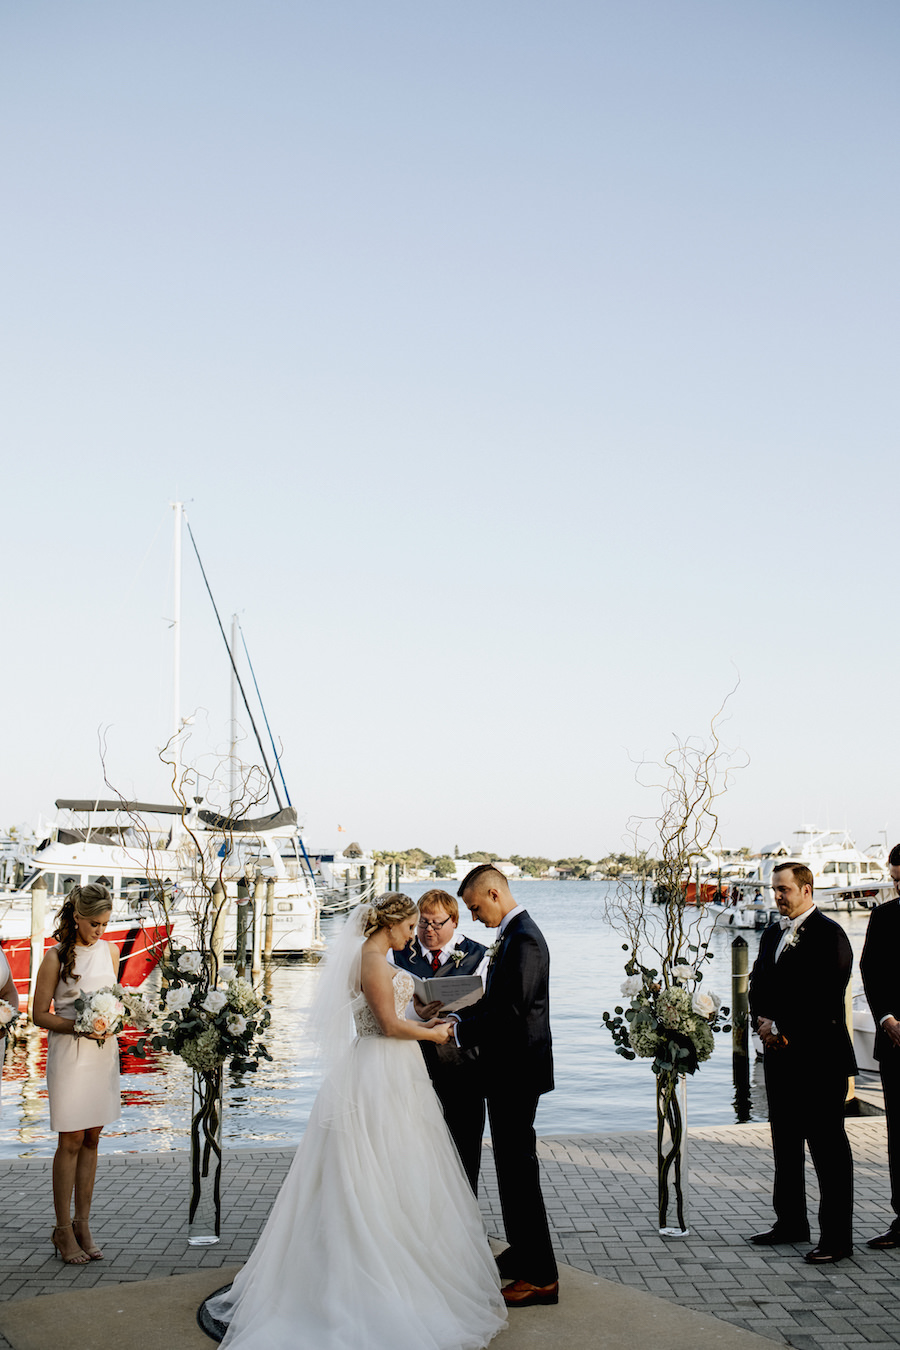 Outdoor Sarasota Wedding Ceremony with Bride and Groom Between Tall Glass Vases with Branches, Ivory Florals and Greenery   Wedding Venue Sarasota Yacht Club   Tampa Bay Wedding Planner NK Productions